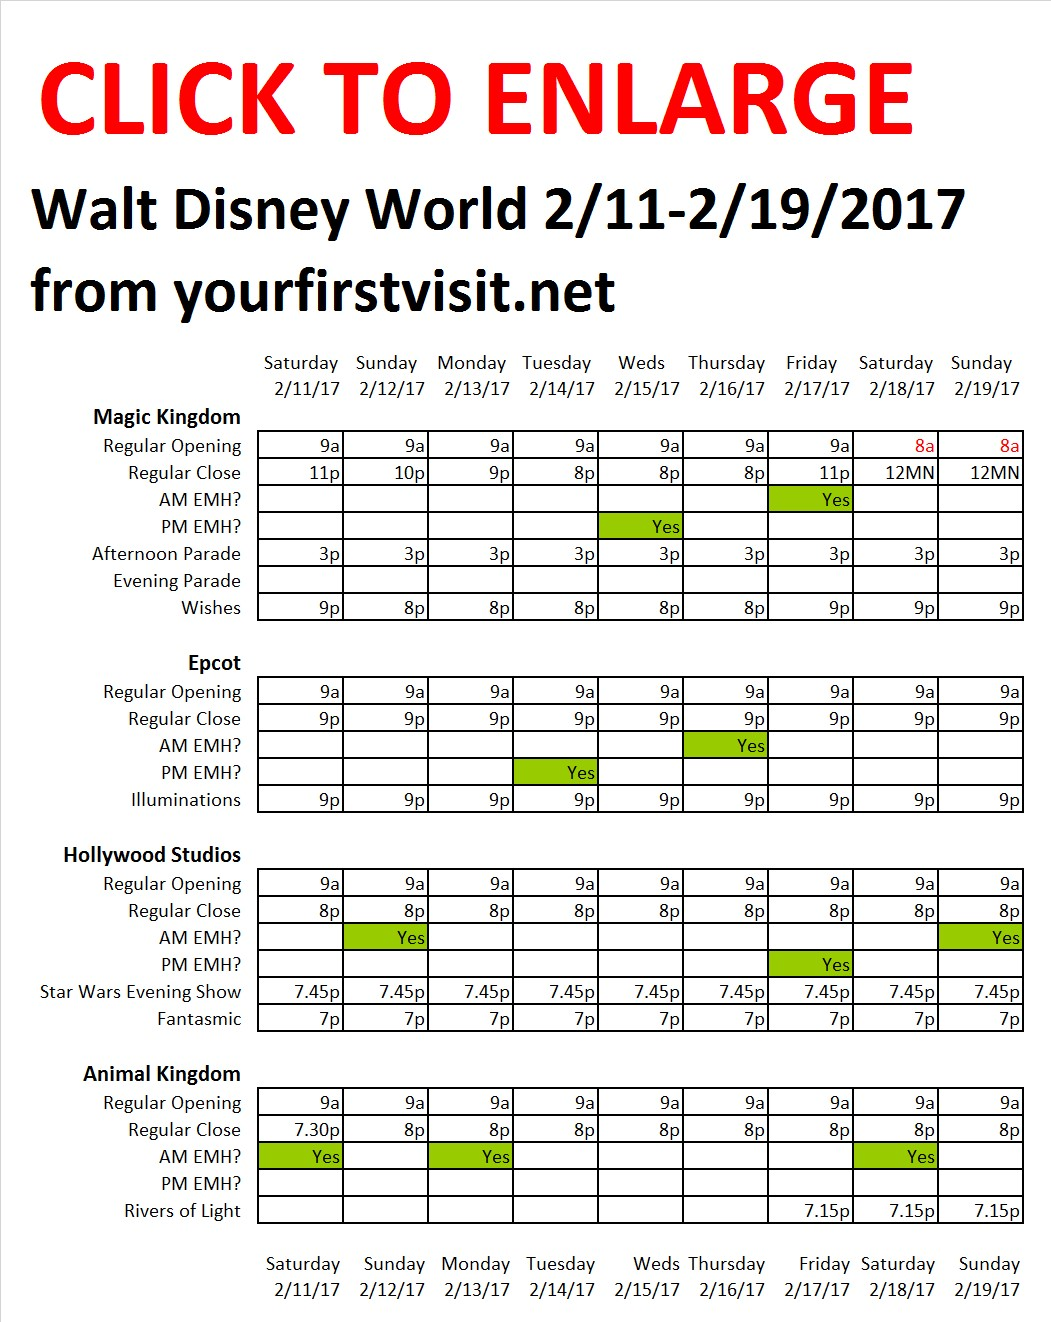 Disney World 2-11 to 2-19-2017 from yourfirstvisit.net